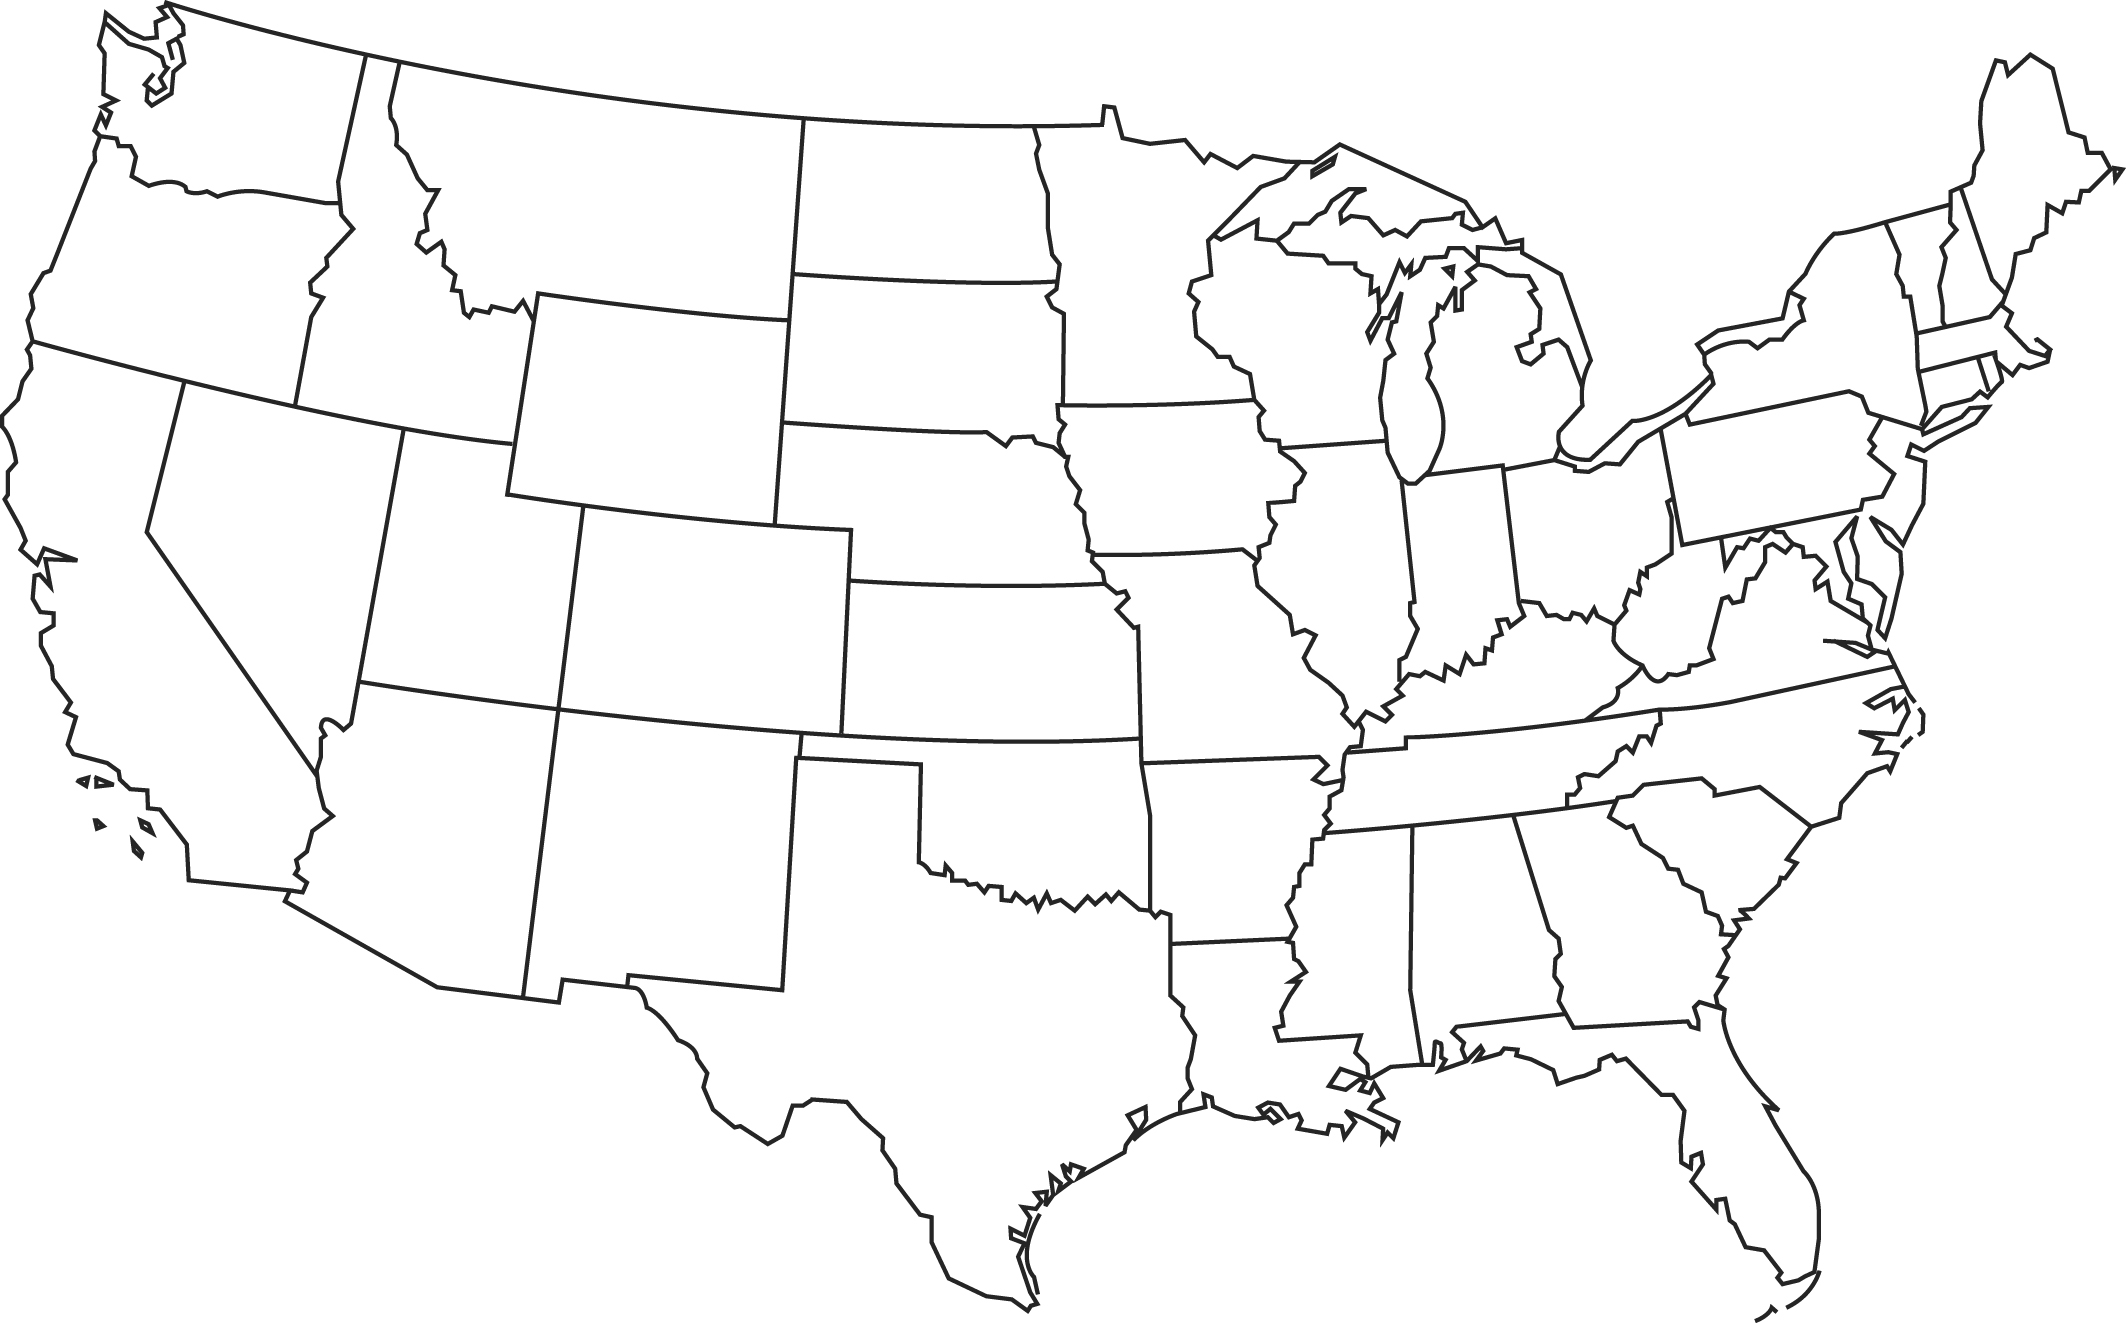 Liry of printable banner free stock us map free png files ... Us Map Template on alabama template, virginia template, california template, united states of america template, global map template, mapping document template, continent map template, florida template, africa map template, bubble map graphic organizer template, world map template, map scale template, new york template, wisconsin template, oregon template, maryland template, europe map template, north america template, arizona template, play format template,